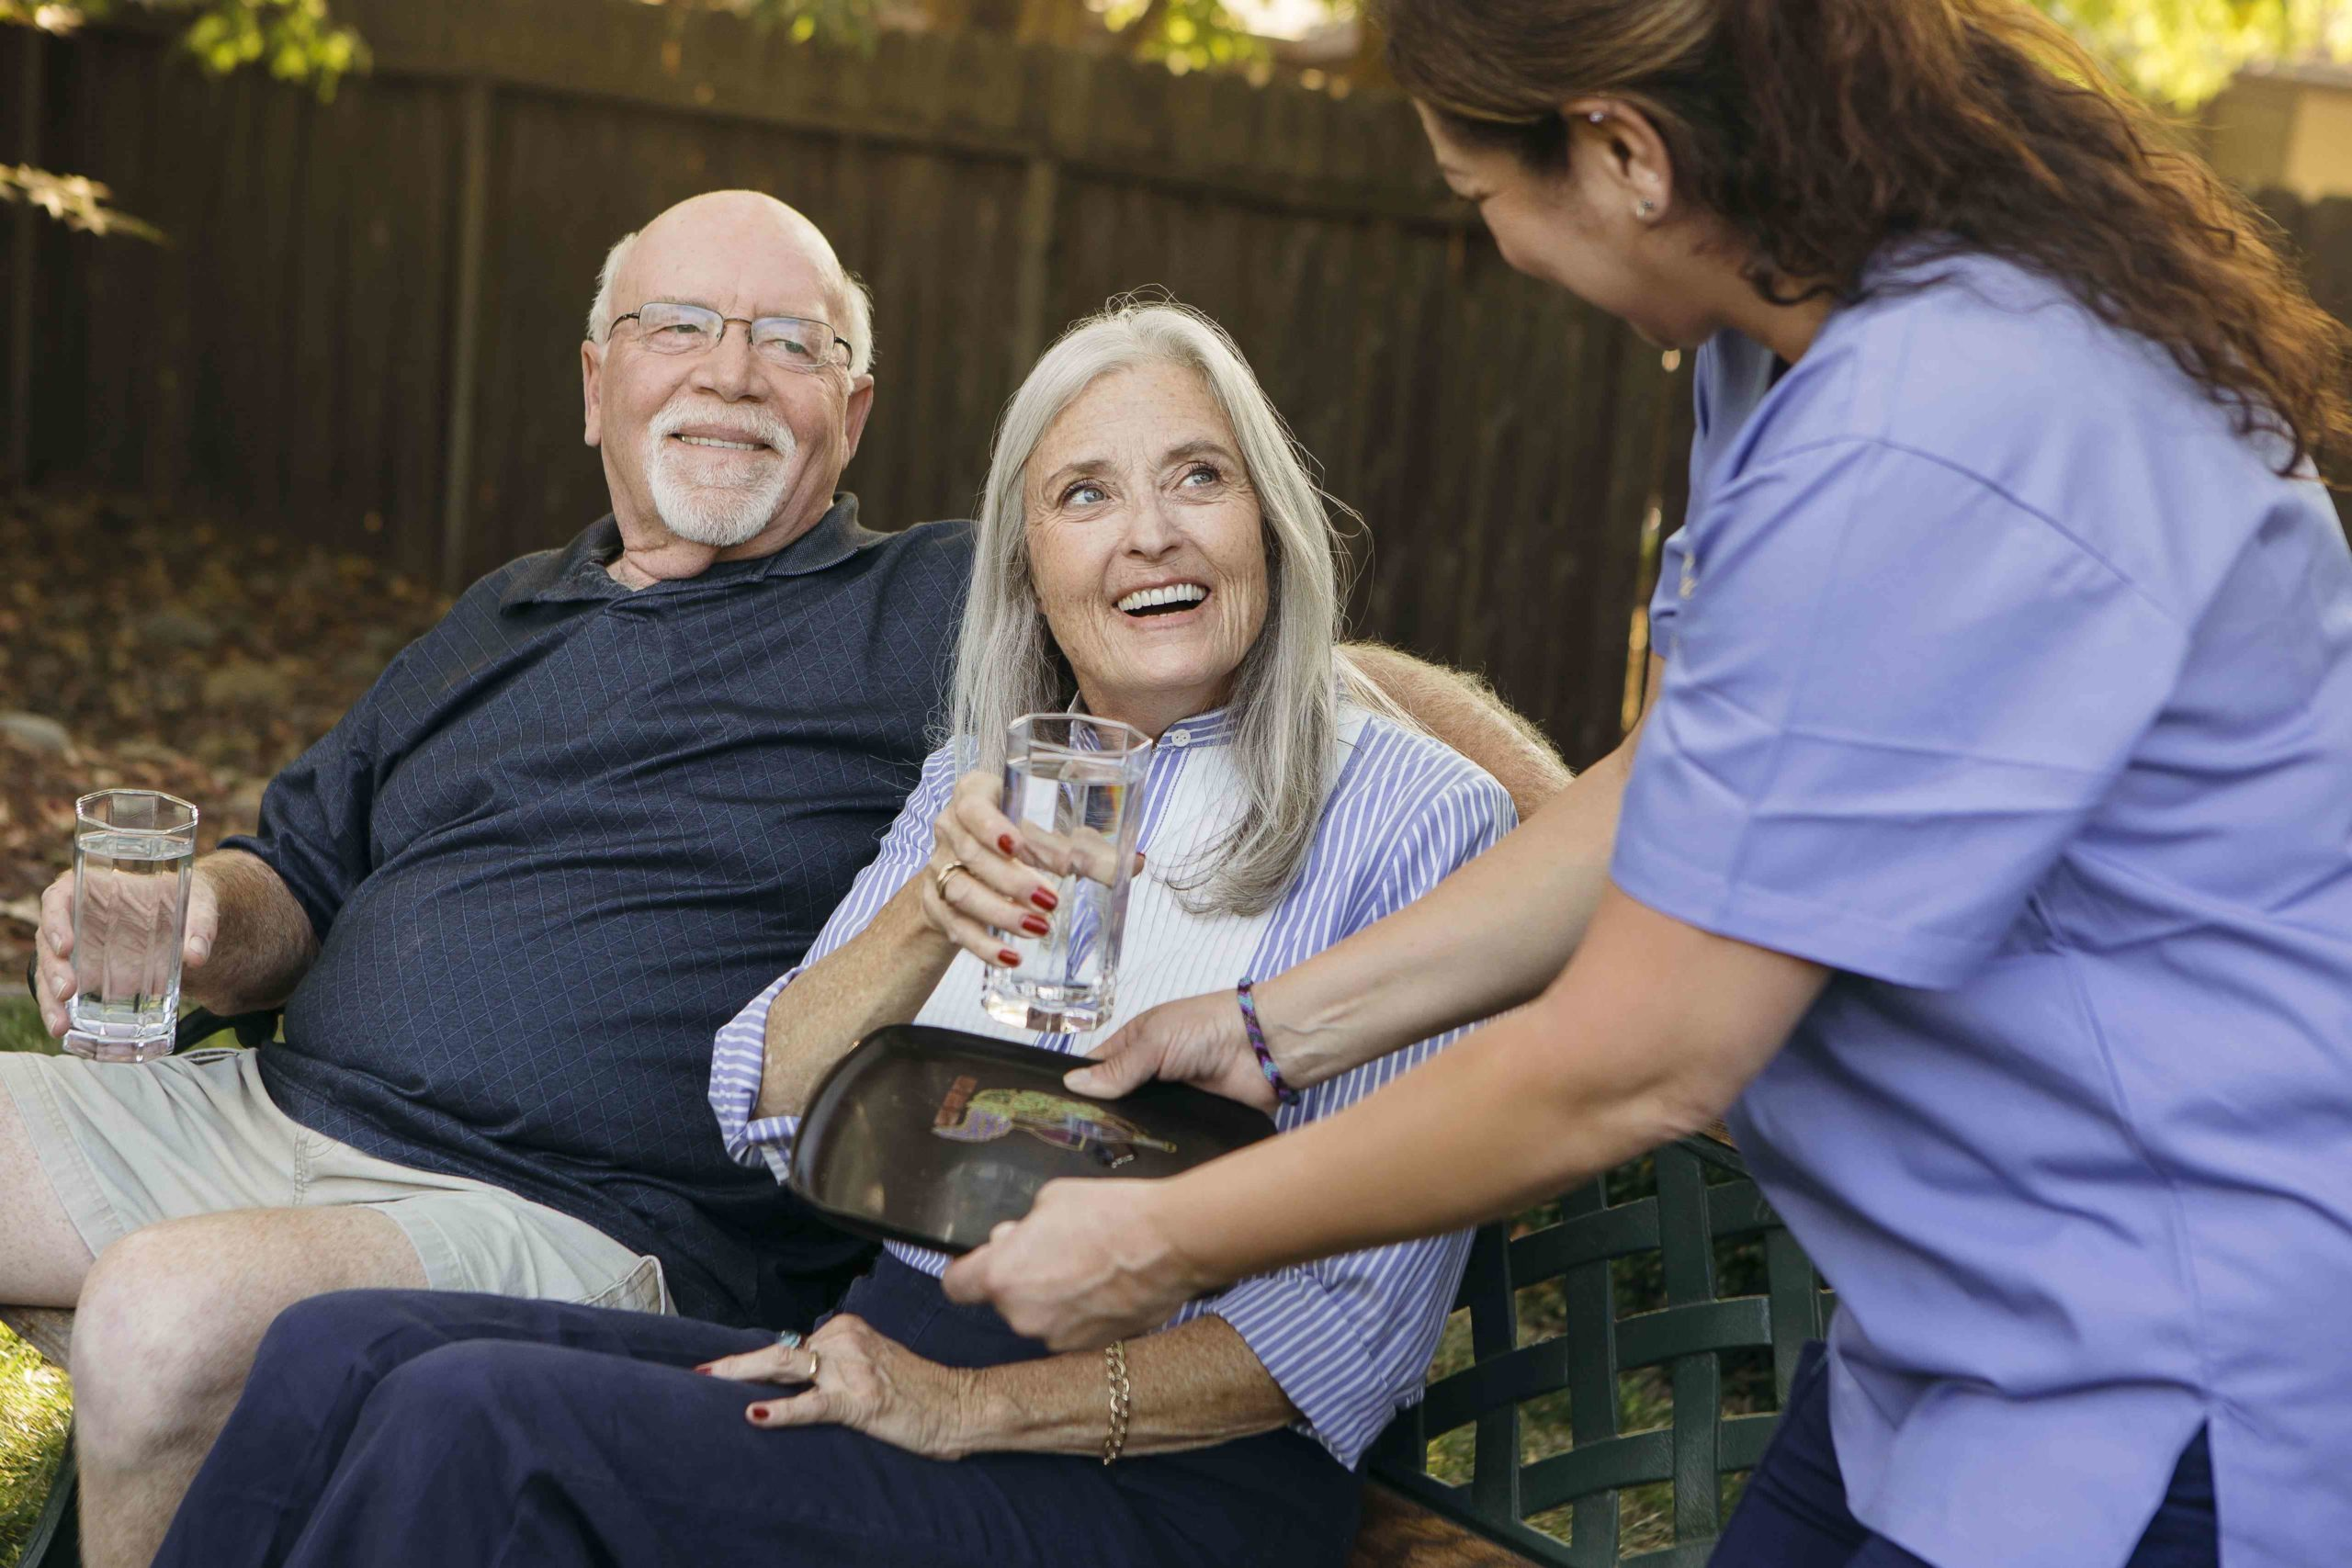 Practicing Self-Care for Caregivers